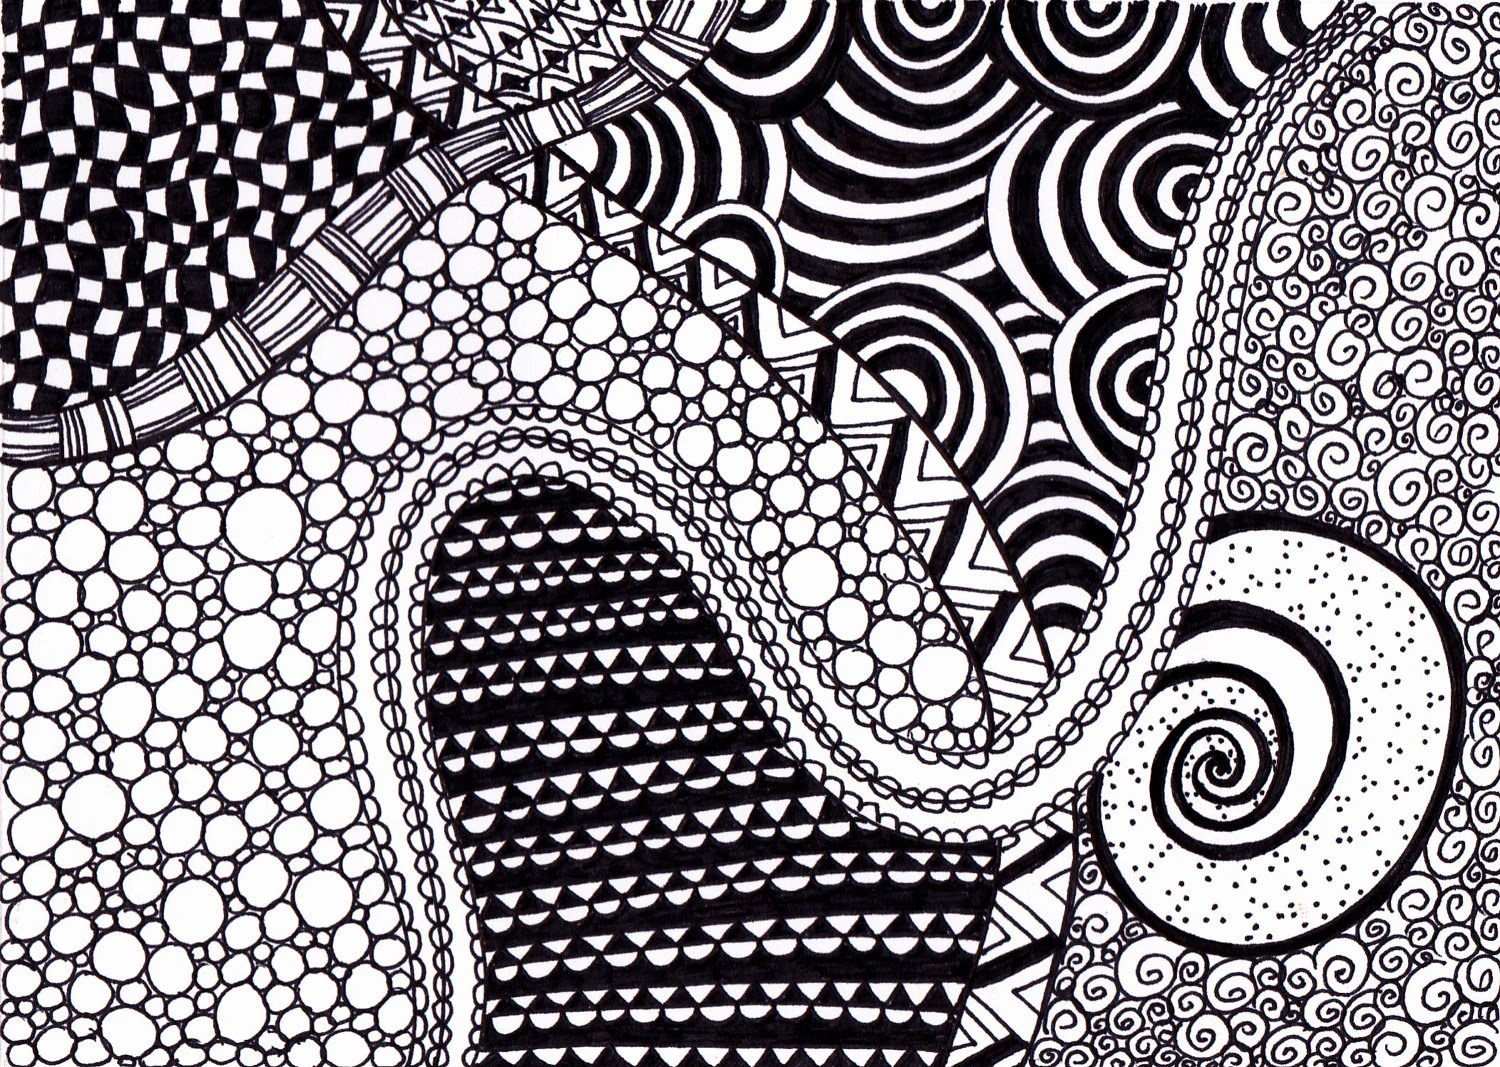 Print- Ink Drawing Zentangle, Black and White, 5 x 7